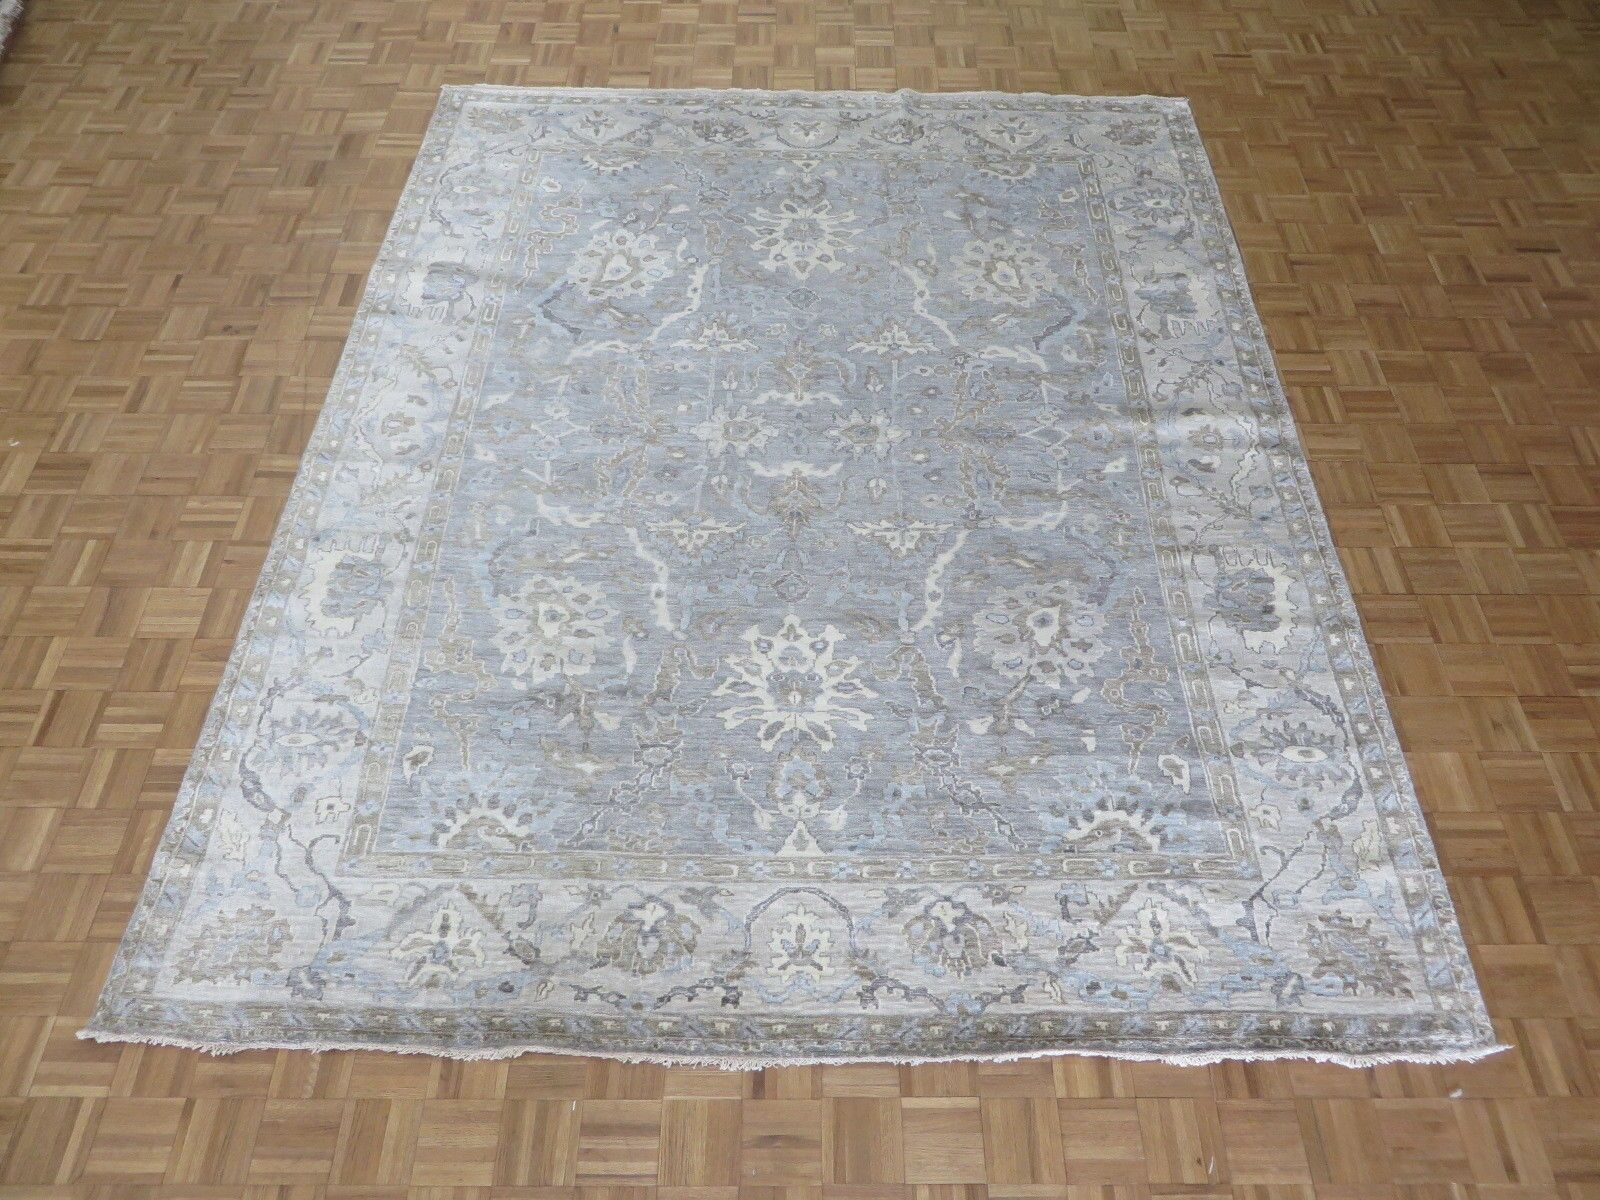 One-of-a-Kind Josephson Turkish Oushak Hand-Knotted Wool Gray/Blue Area Rug